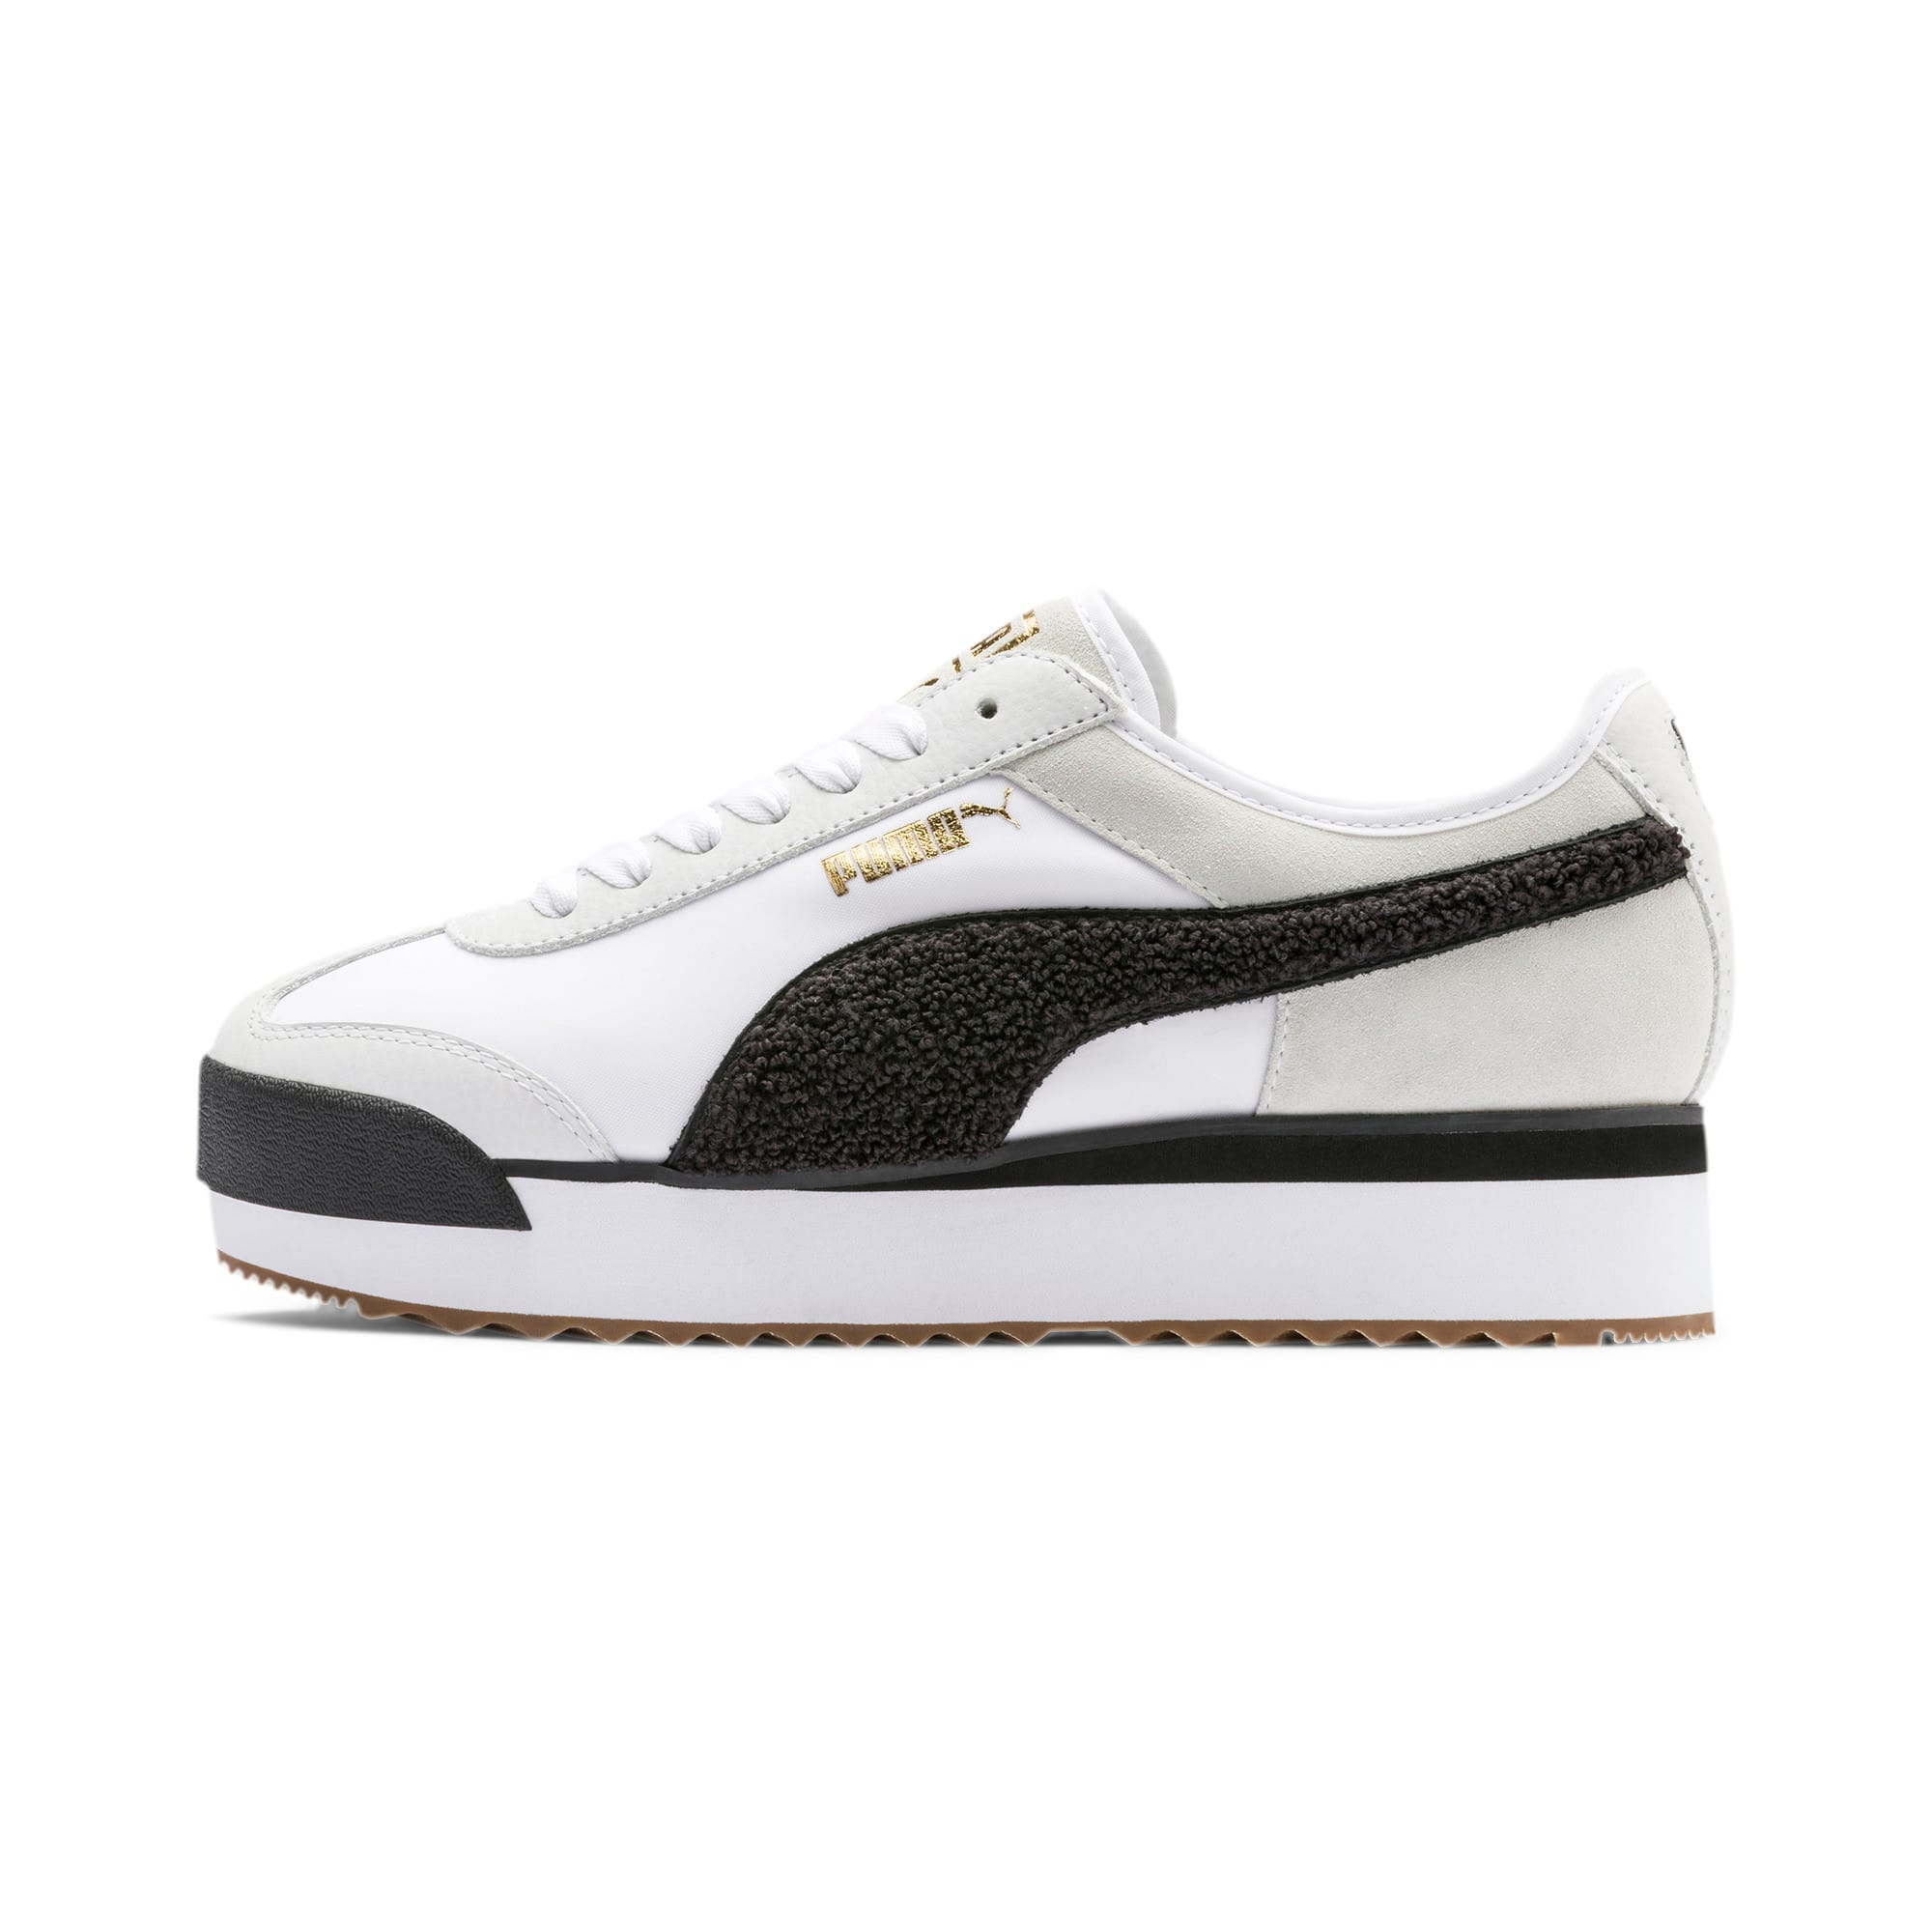 Thumbnail 1 of Roma Amor Heritage Women's Sneakers, Puma White-Puma Black, medium